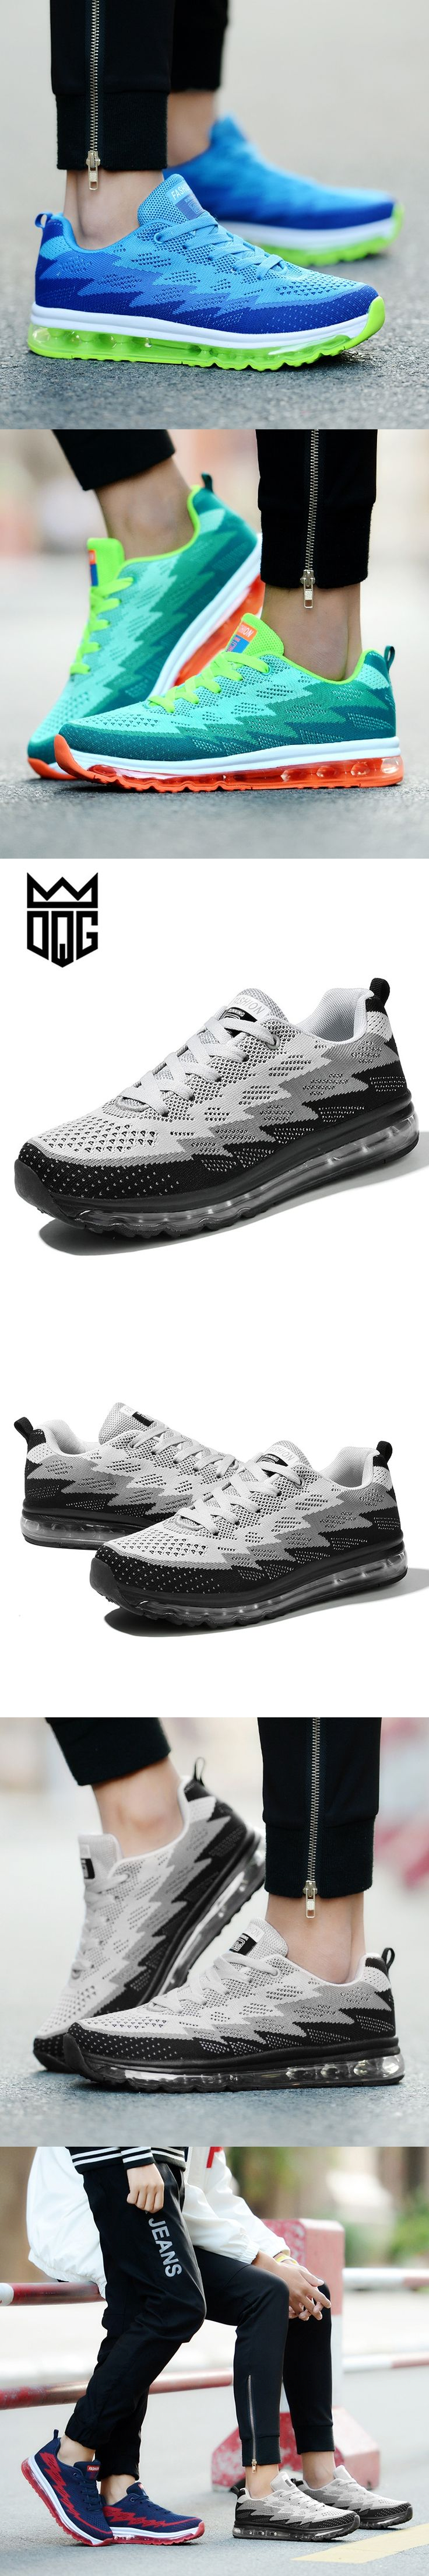 DQG Men Women Air Running Shoes Fly Weave Breathable Soft Trend Outdoor Men's Running Shoes For Women Male Sport Snekers